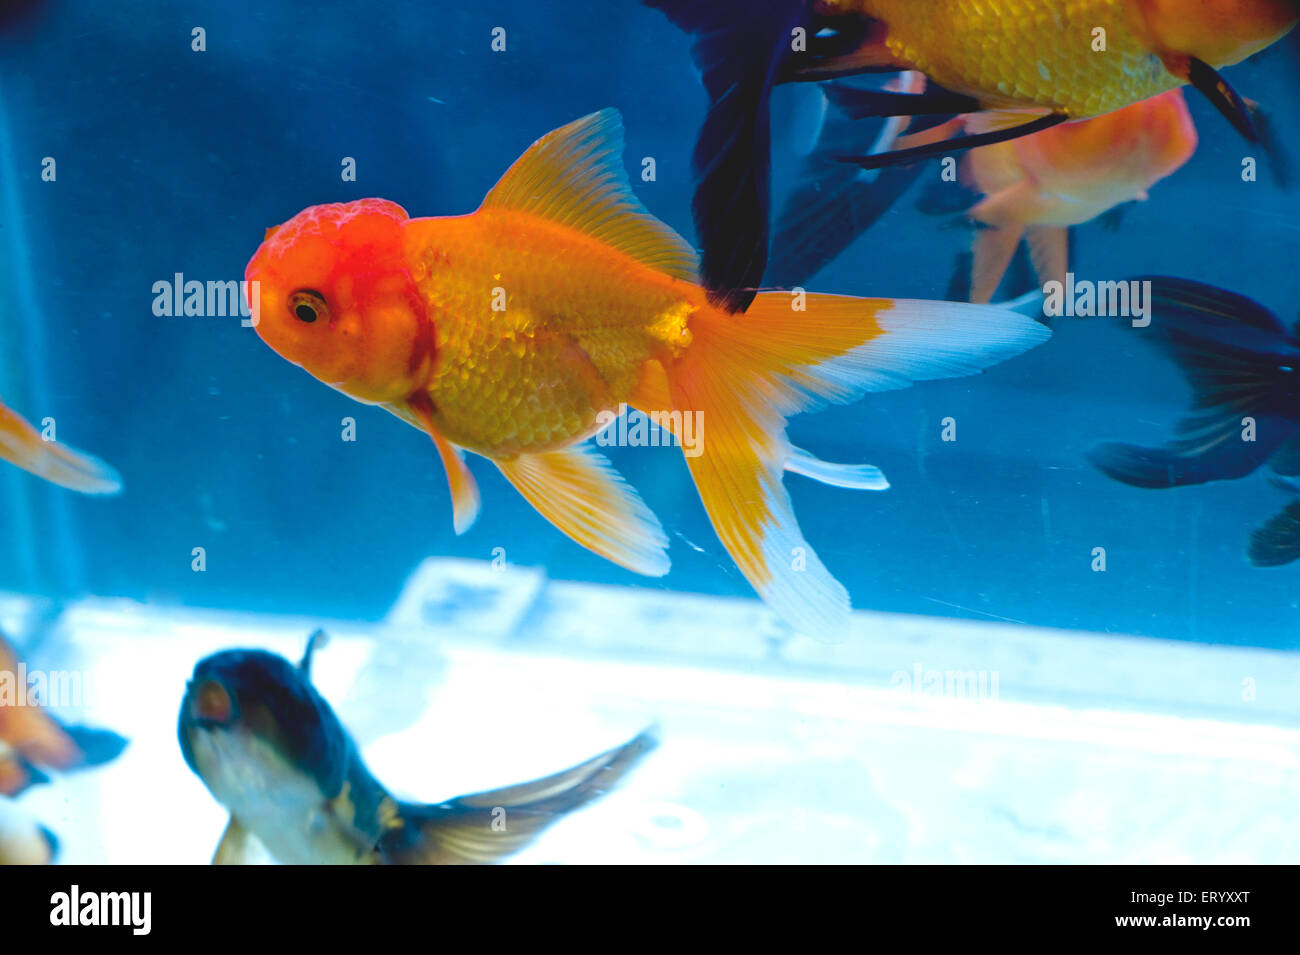 Red ranchu and moore fishes - Stock Image